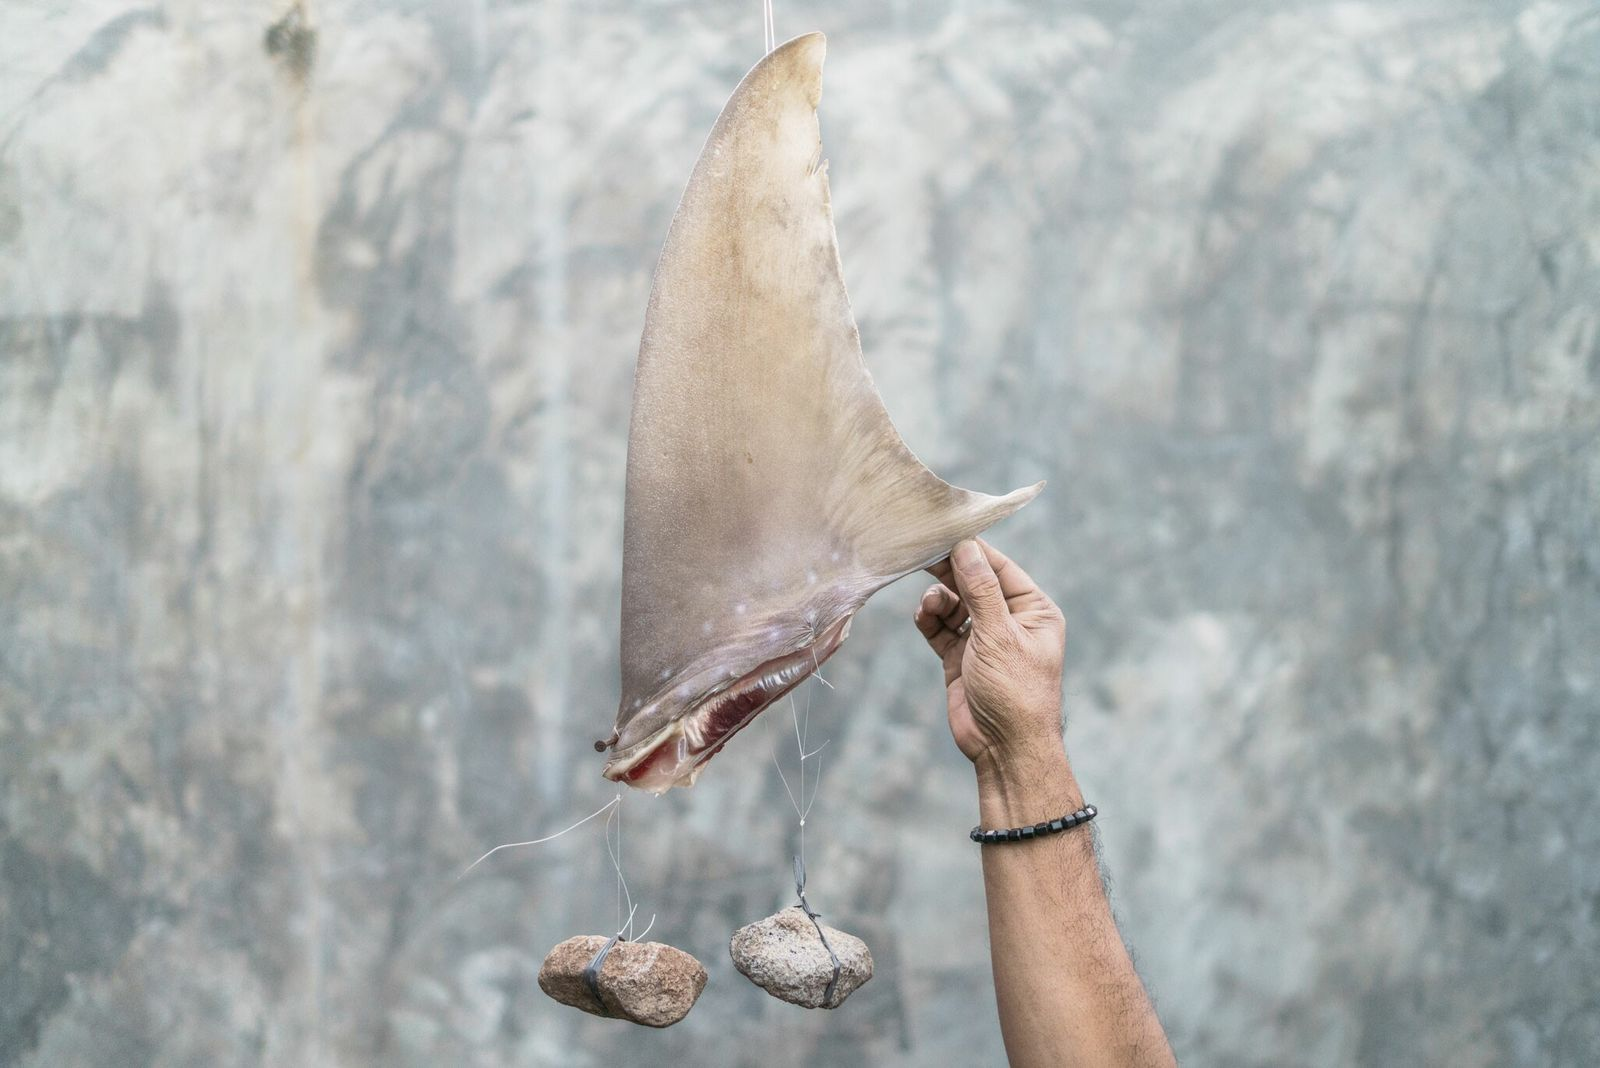 A shark fin is tied with rocks to help it keep its shape as it dries. ...